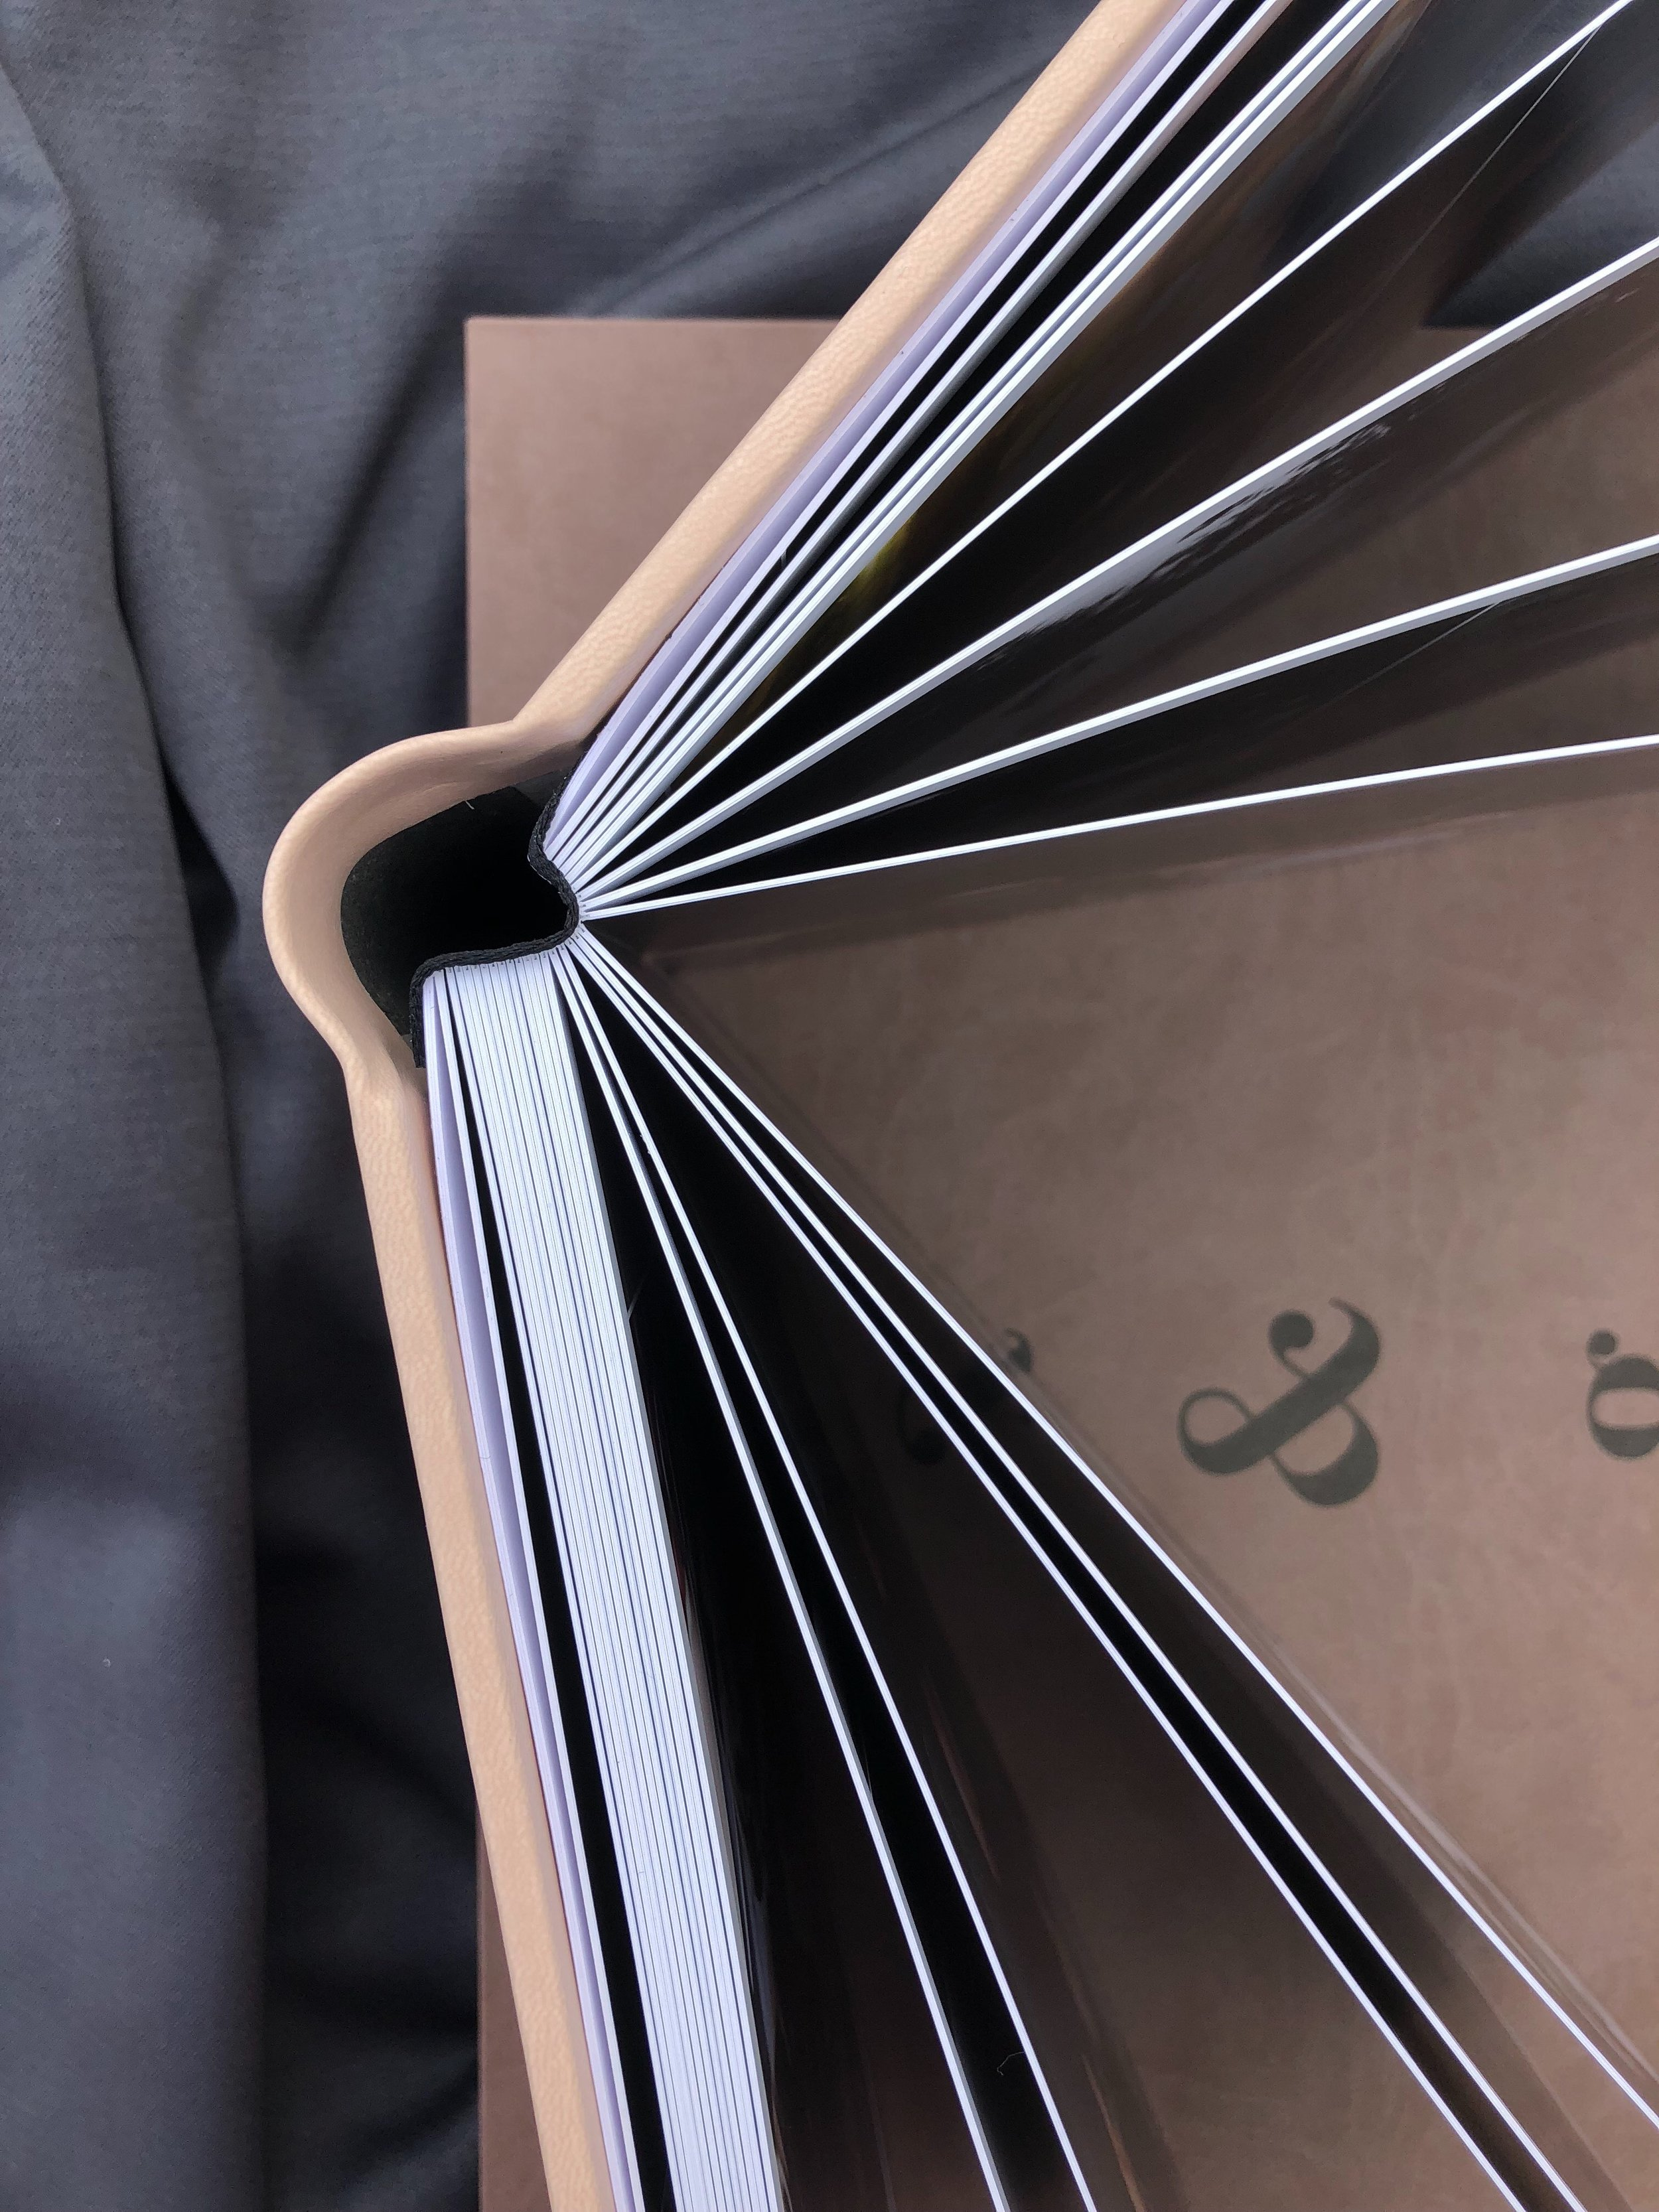 Crafted to last - All albums feature 1.3mm thick rigid pages that will stand the test of time